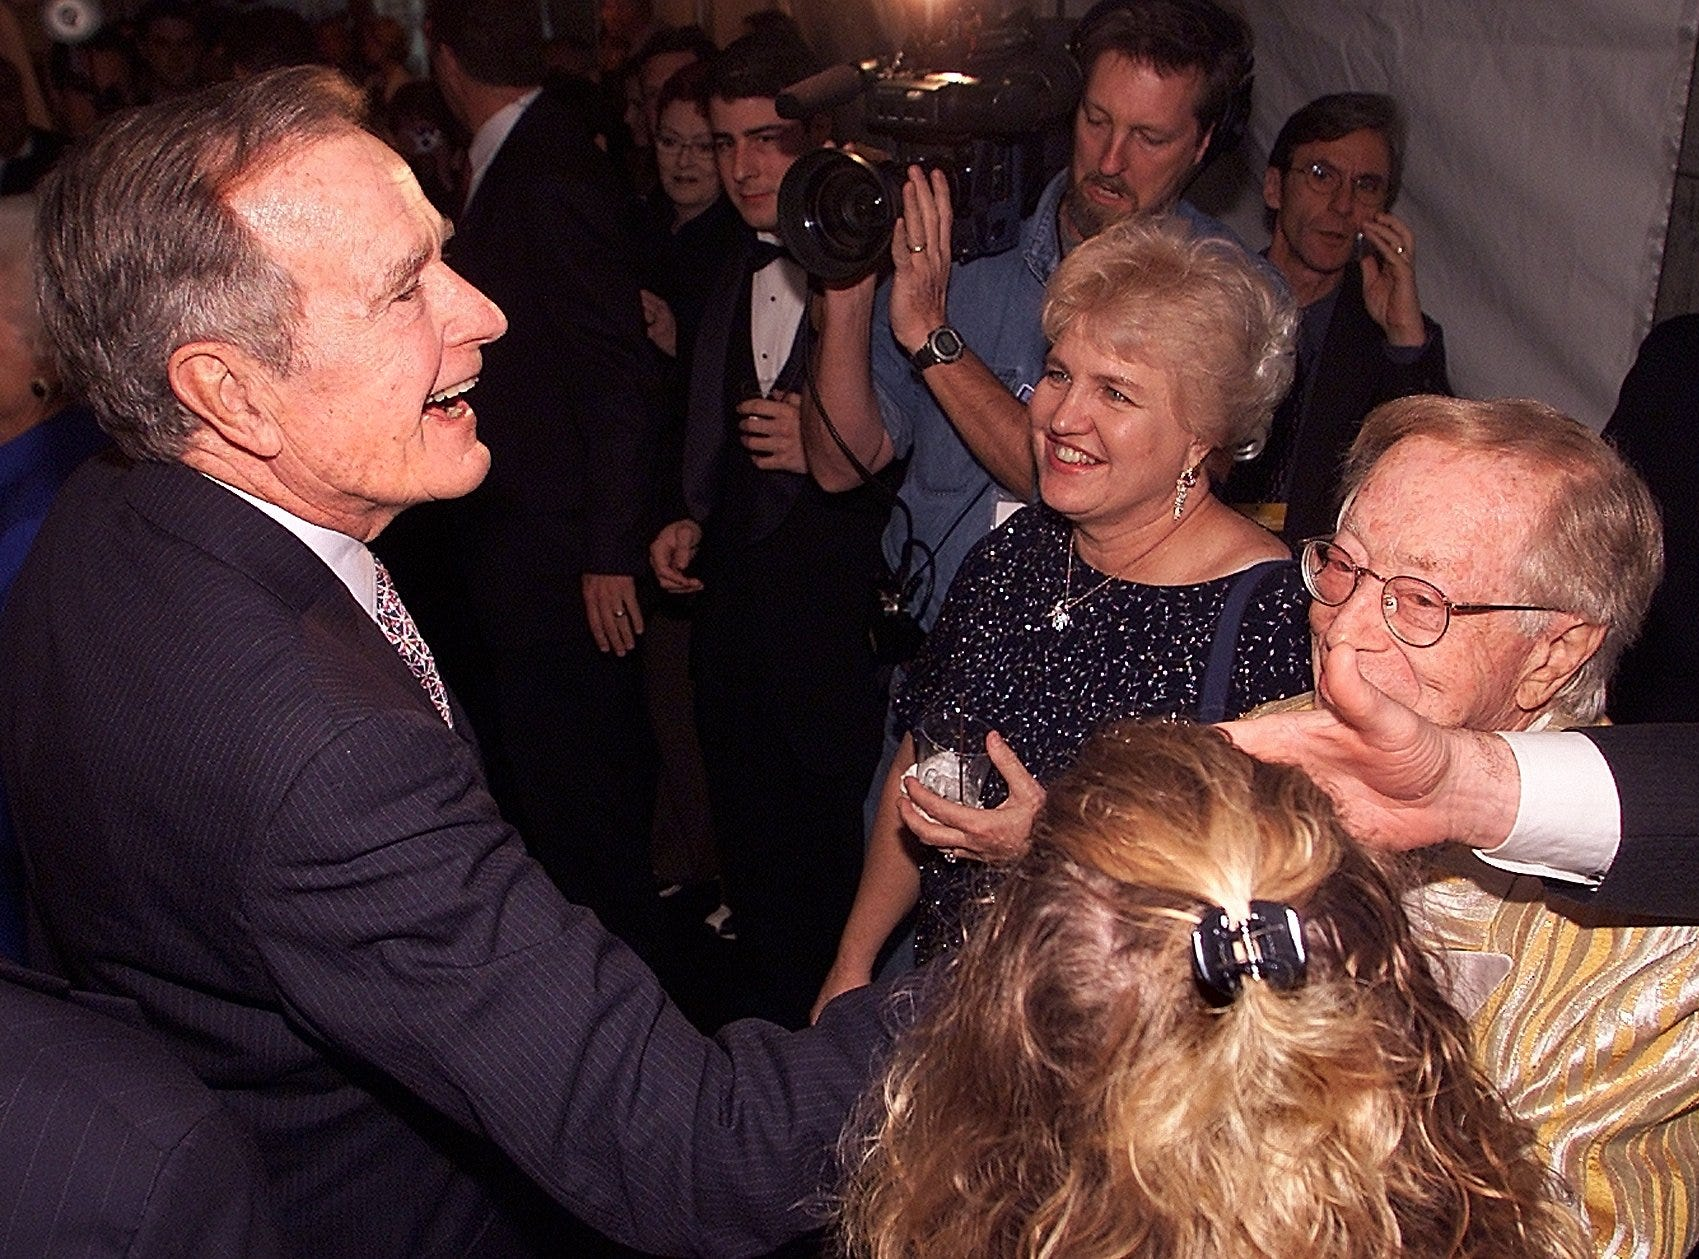 Former President George H. W. Bush greets the crowd at his son Governor Jeb Bush's Inauguration Party.